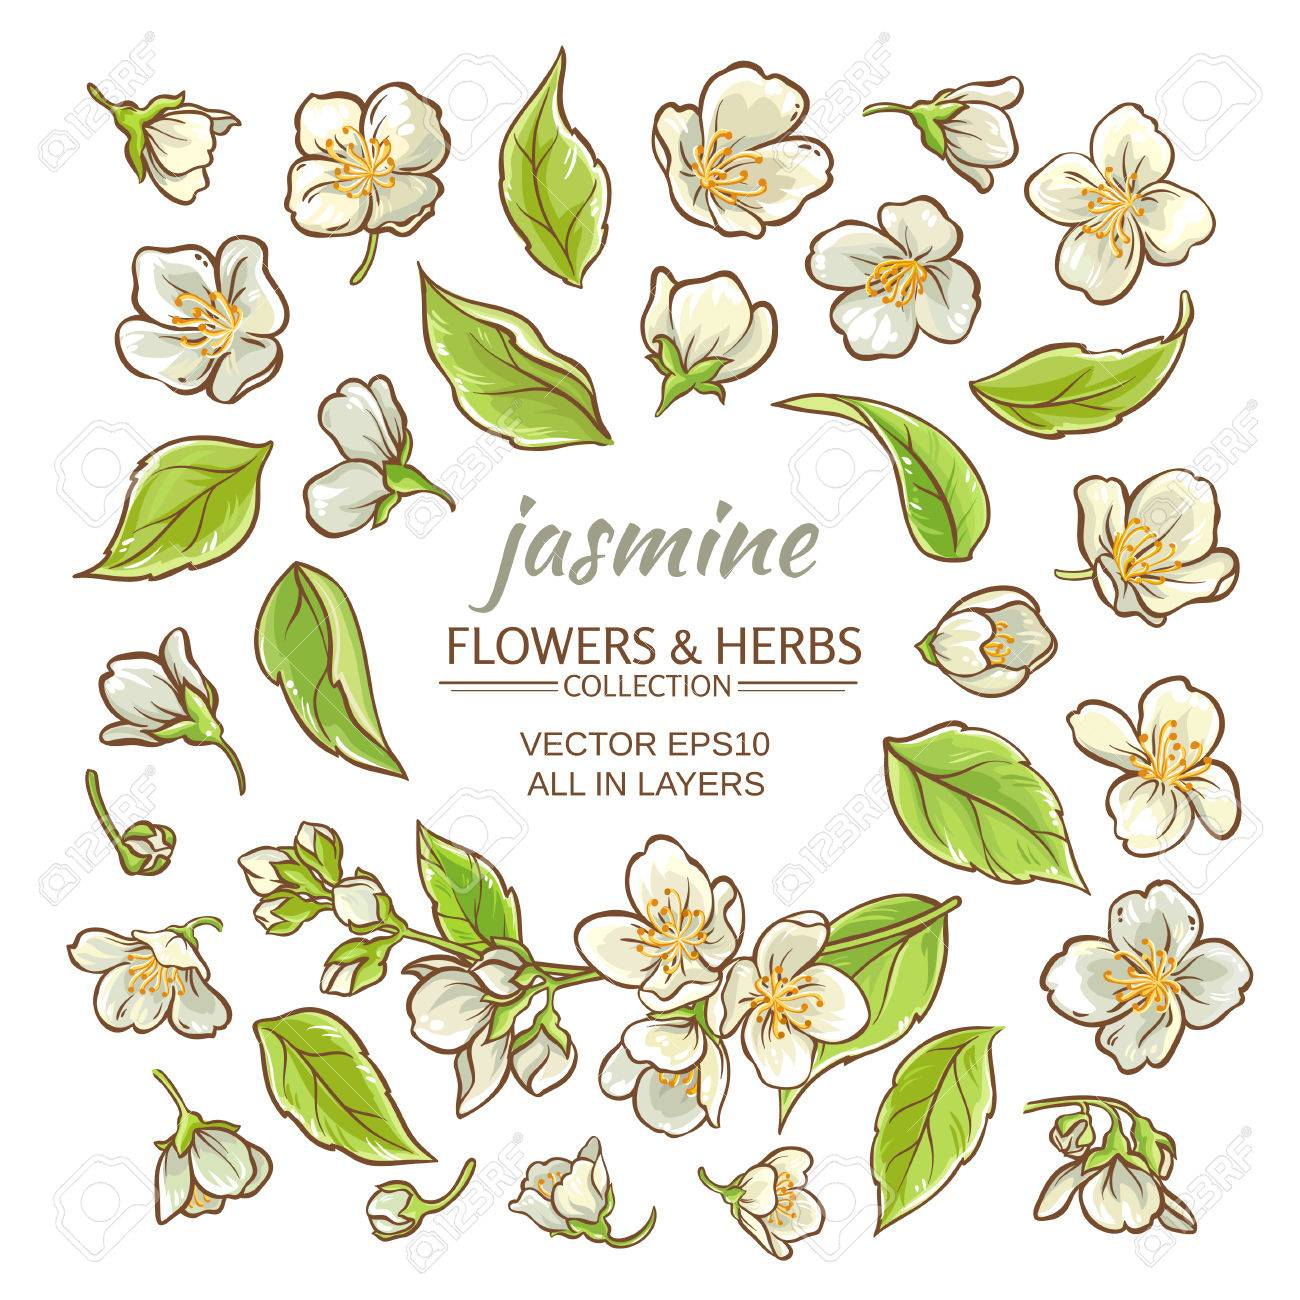 Jasmine Flowers Vector Set On White Background Royalty Free Cliparts